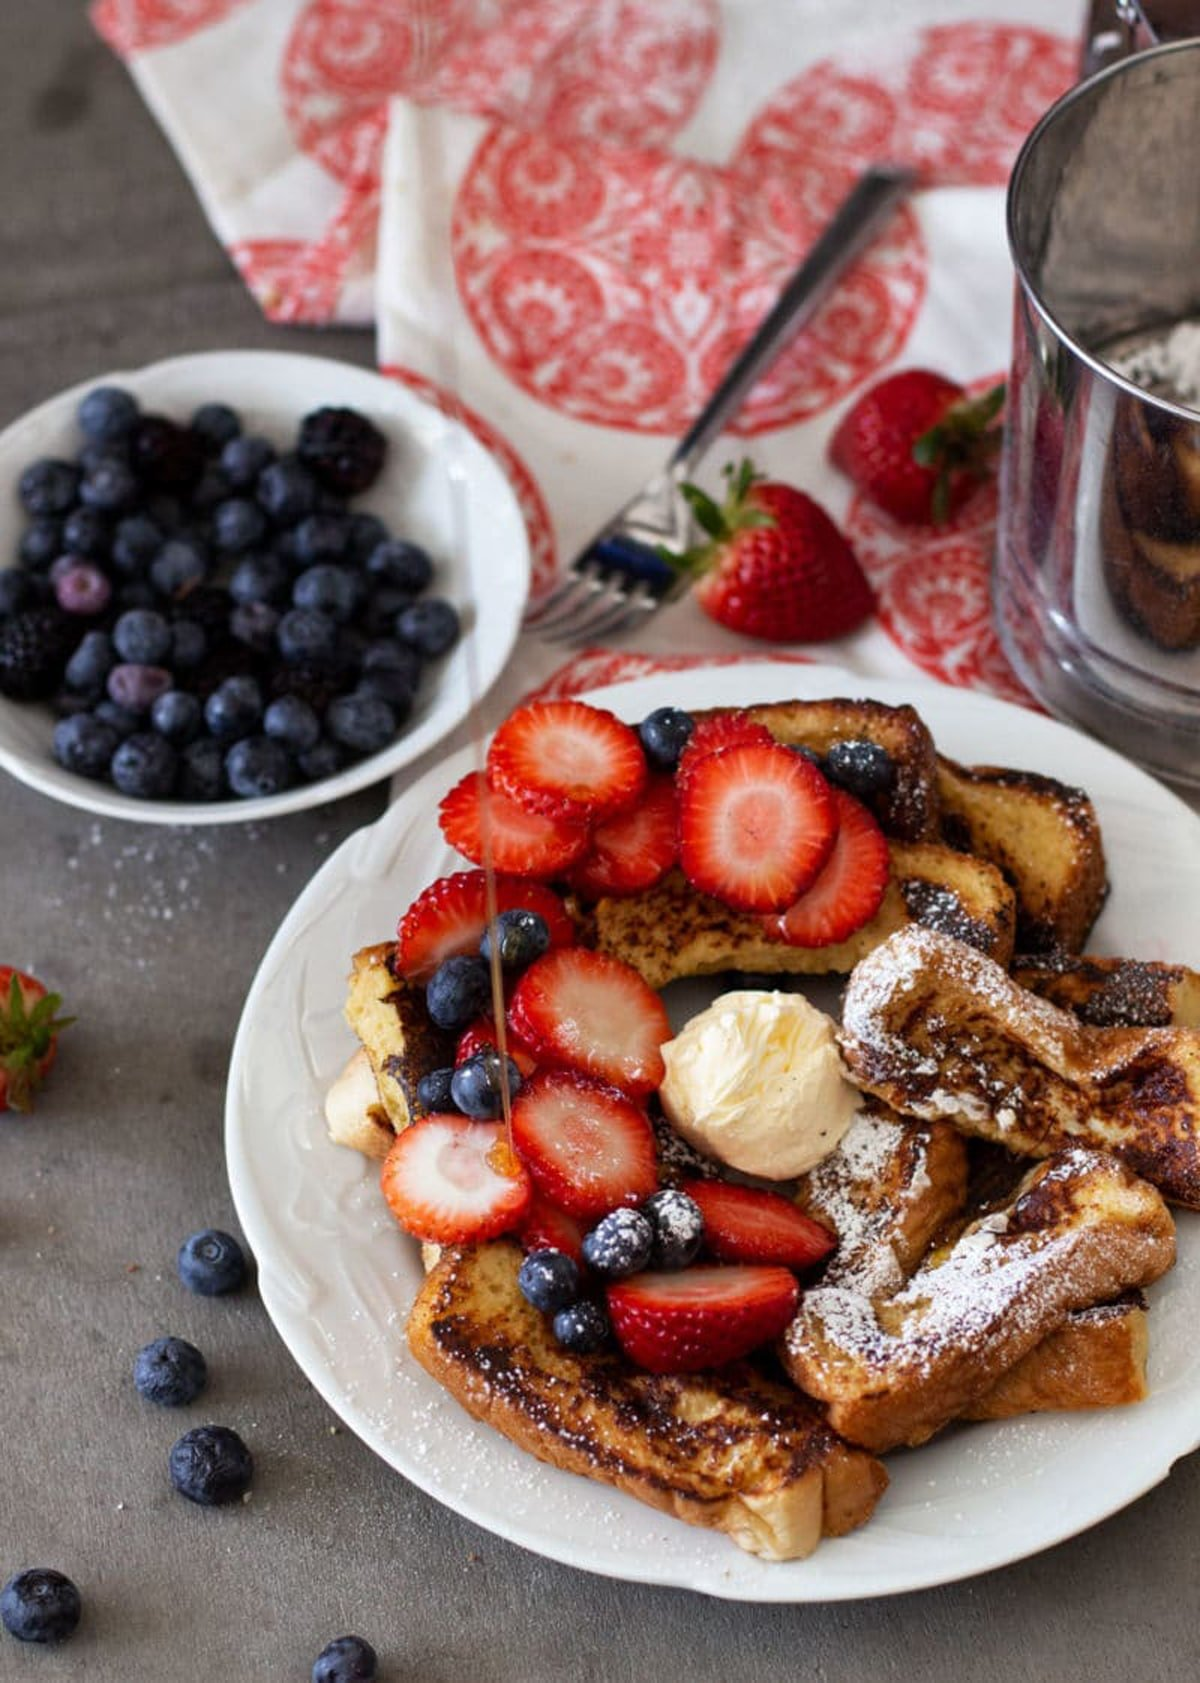 Syrup being poured into a plate of french toast sticks topped with butter, strawberries, blueberries and powdered sugar.